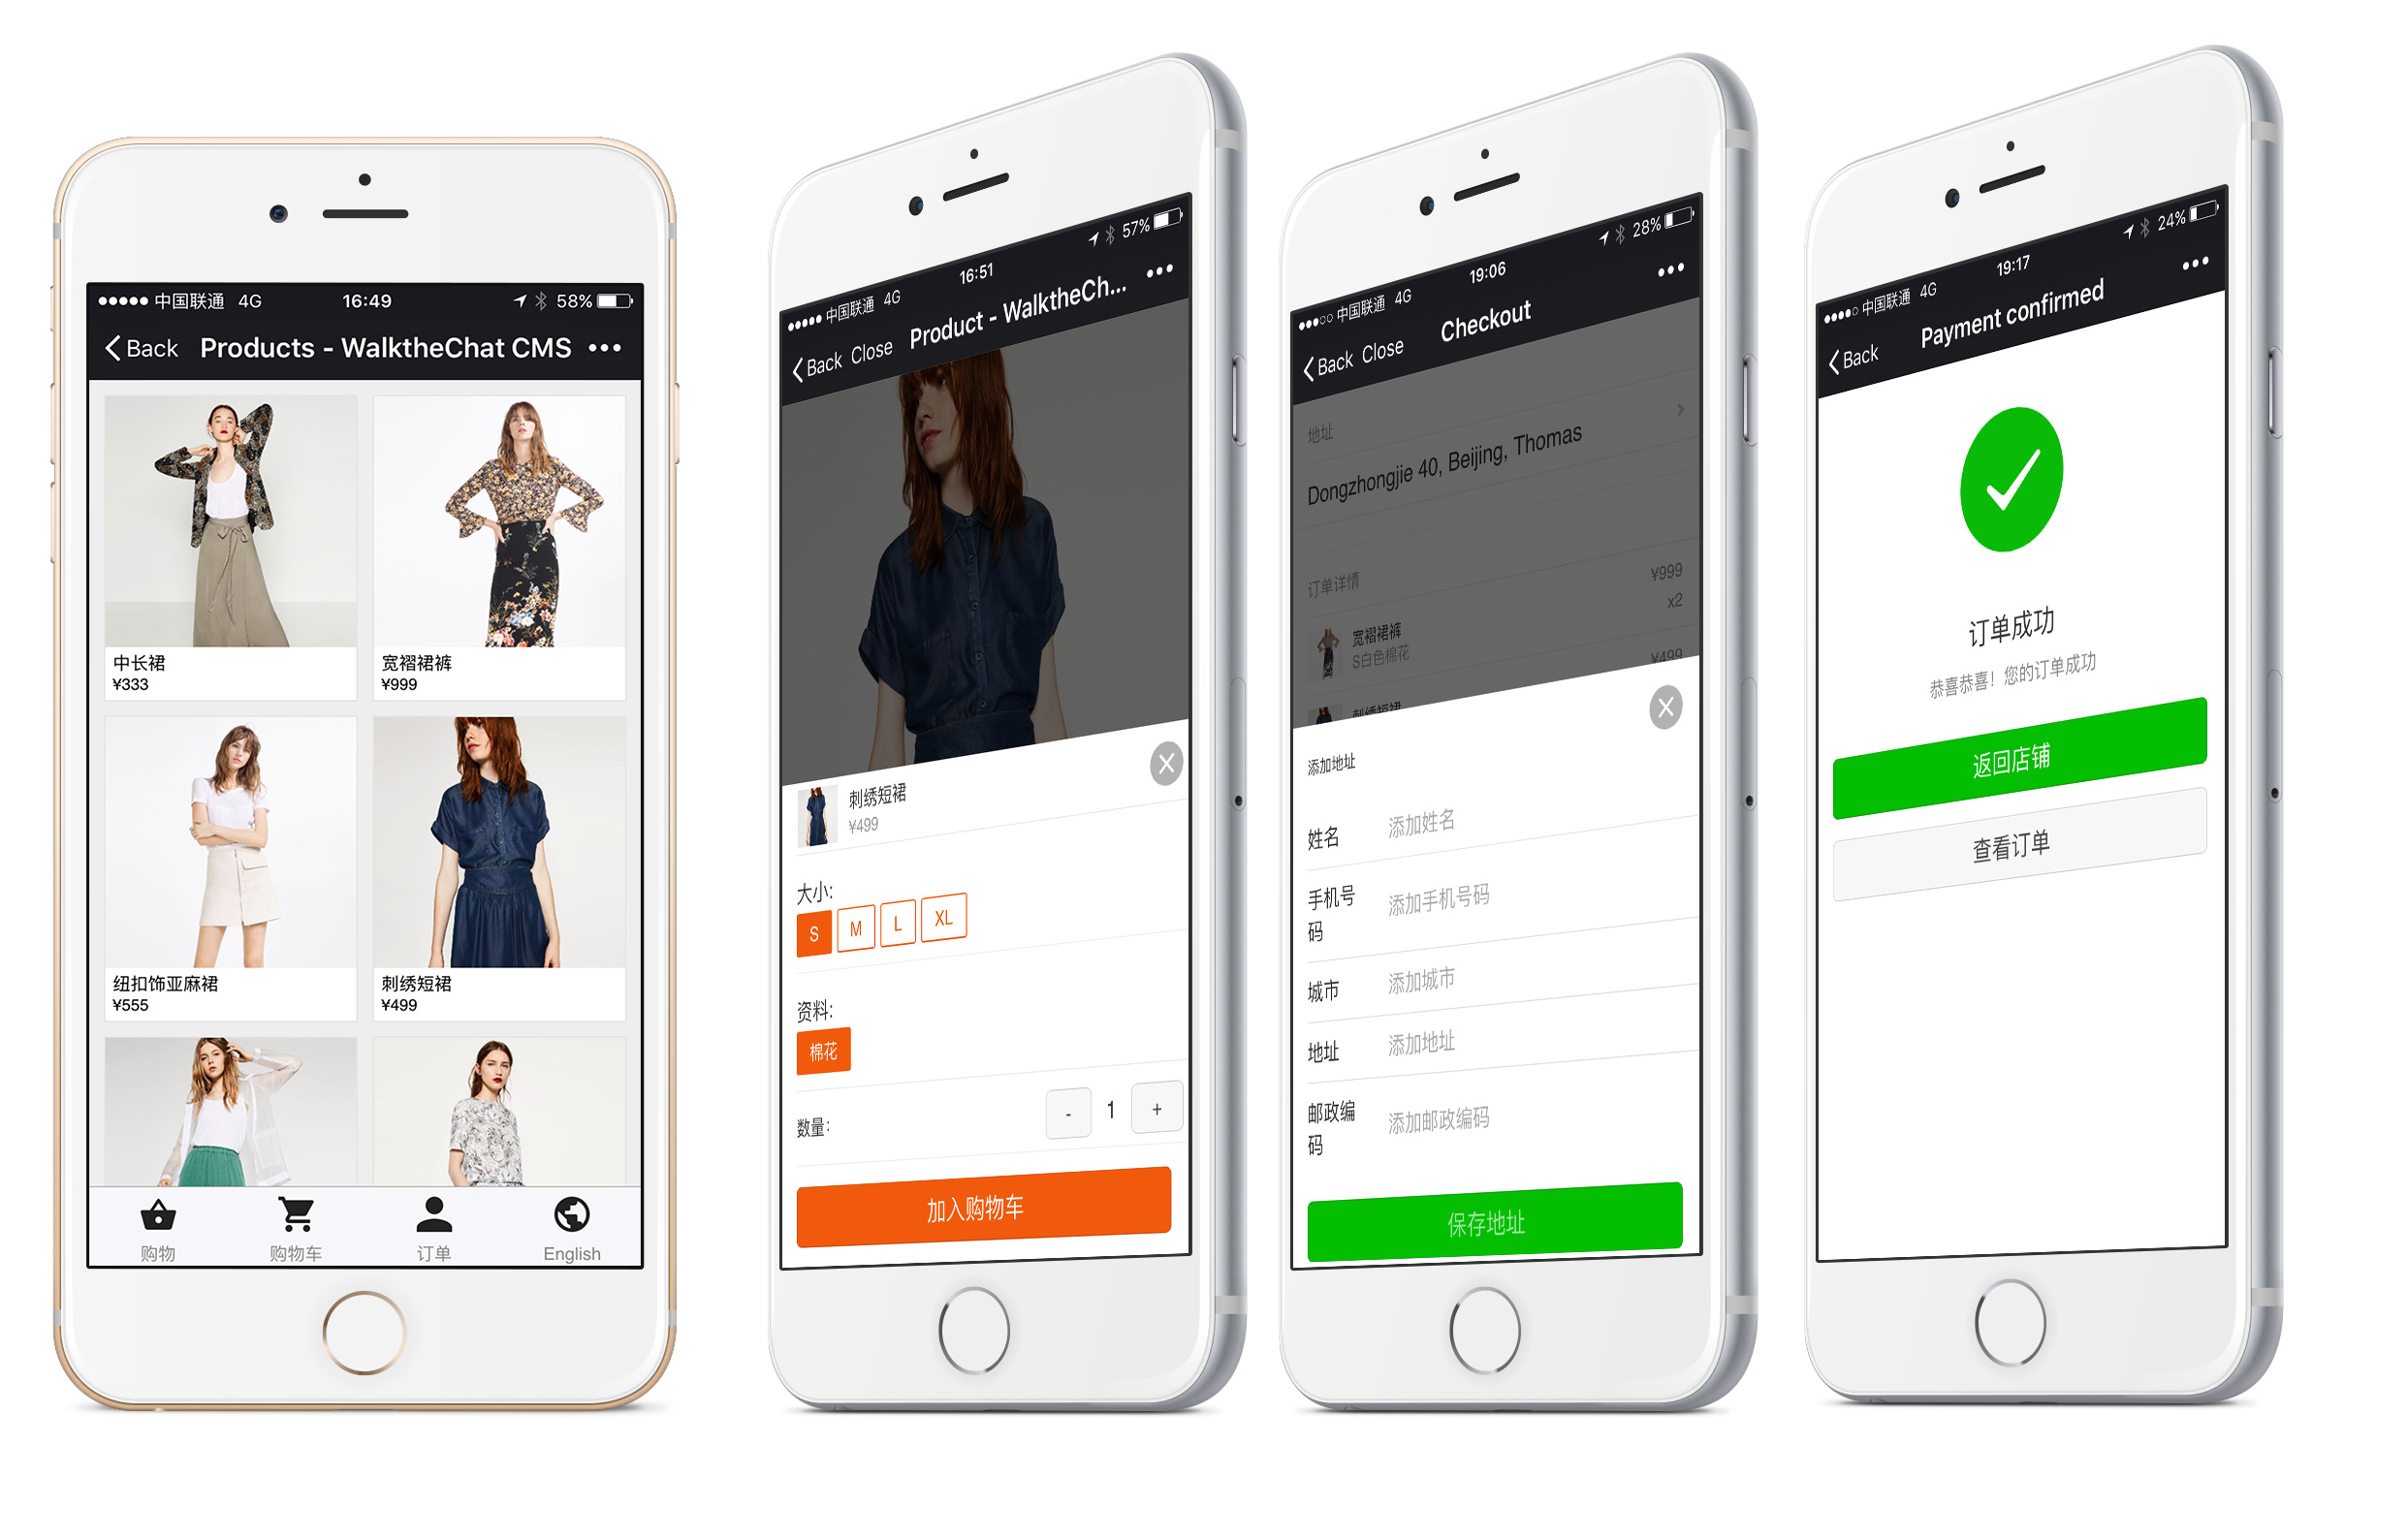 China and WeChat are at the cutting edge of mobile commerce . Image credit -walkthechat.com